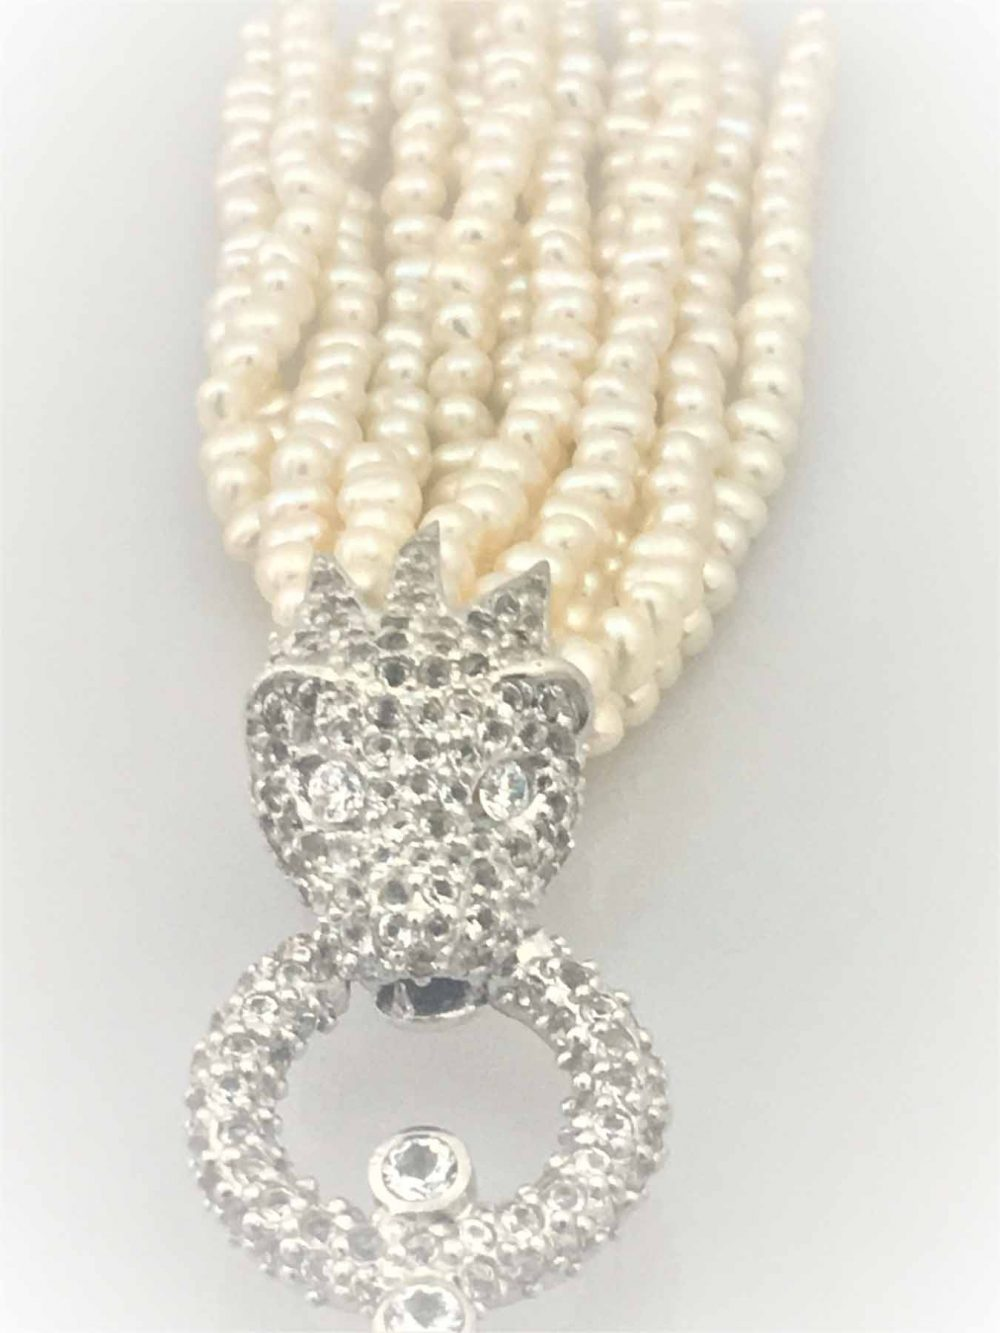 STG Silver Necklace with a Small White Topaz encrusted Lionhead & Seed pearls (70cm)